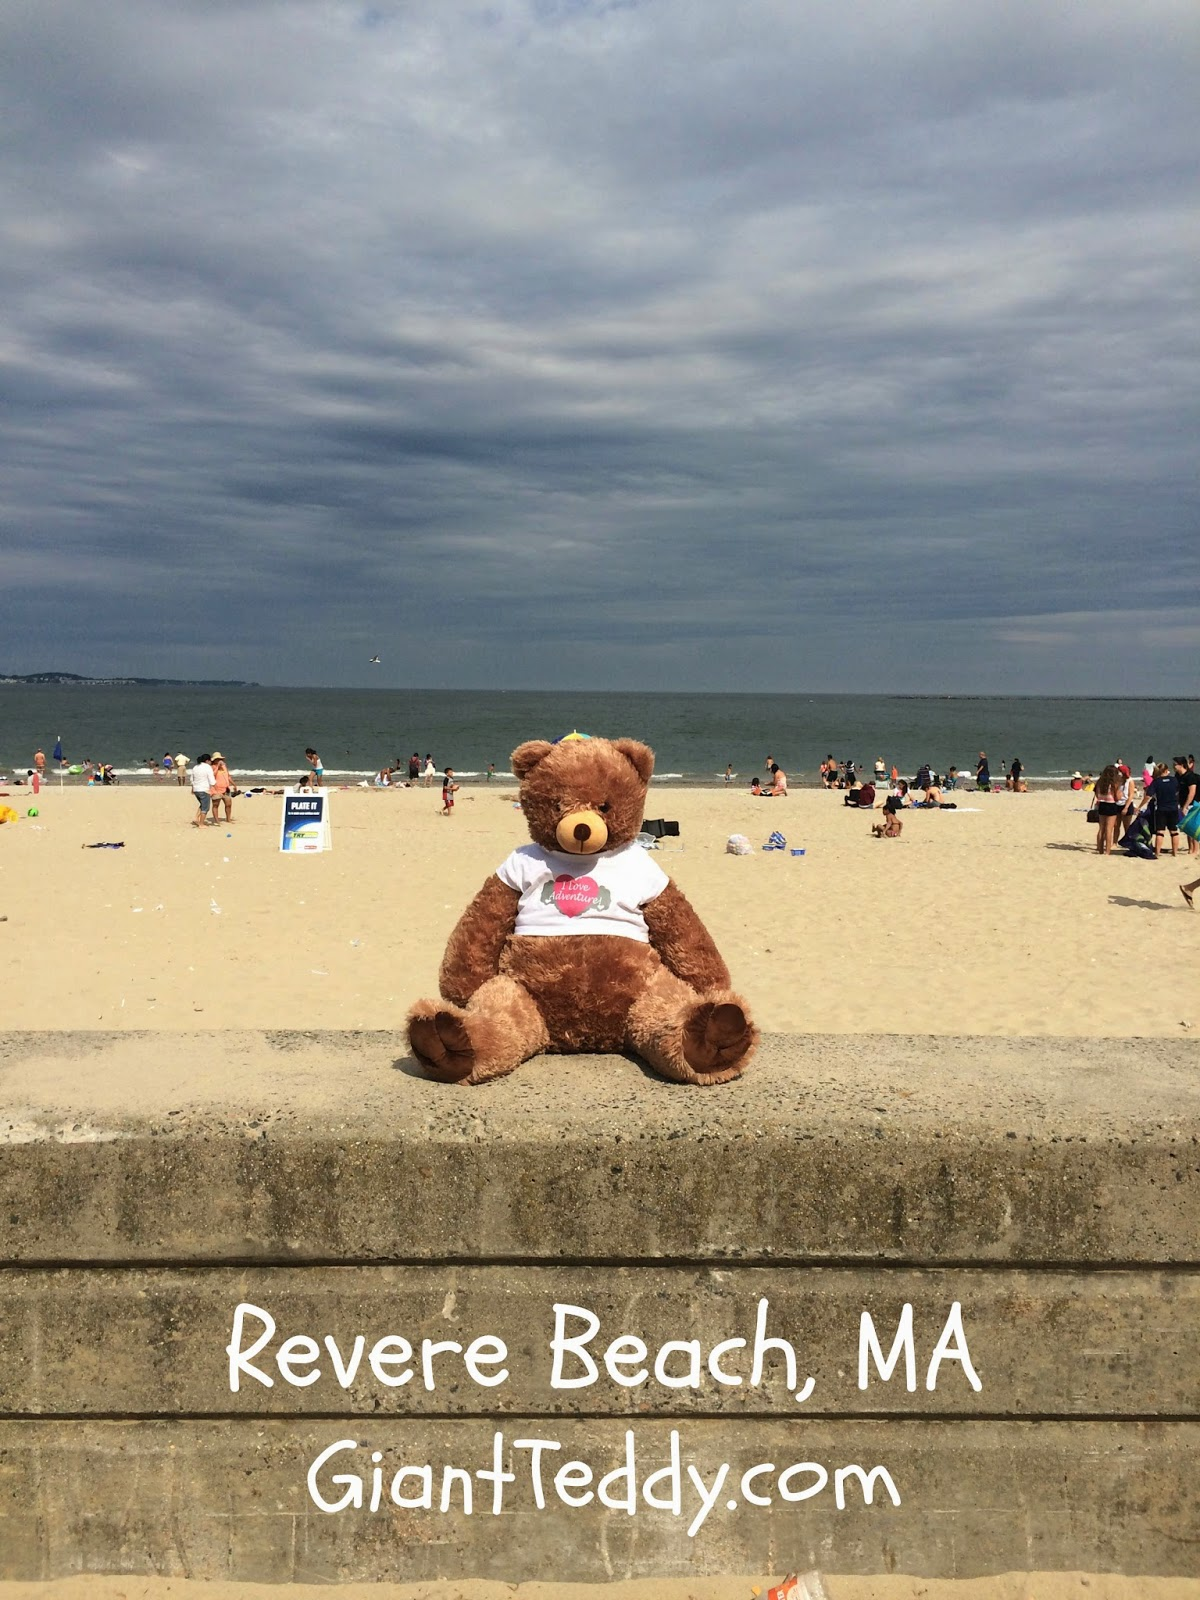 I'm at the famous Sand Sculpting contest in Revere Beach